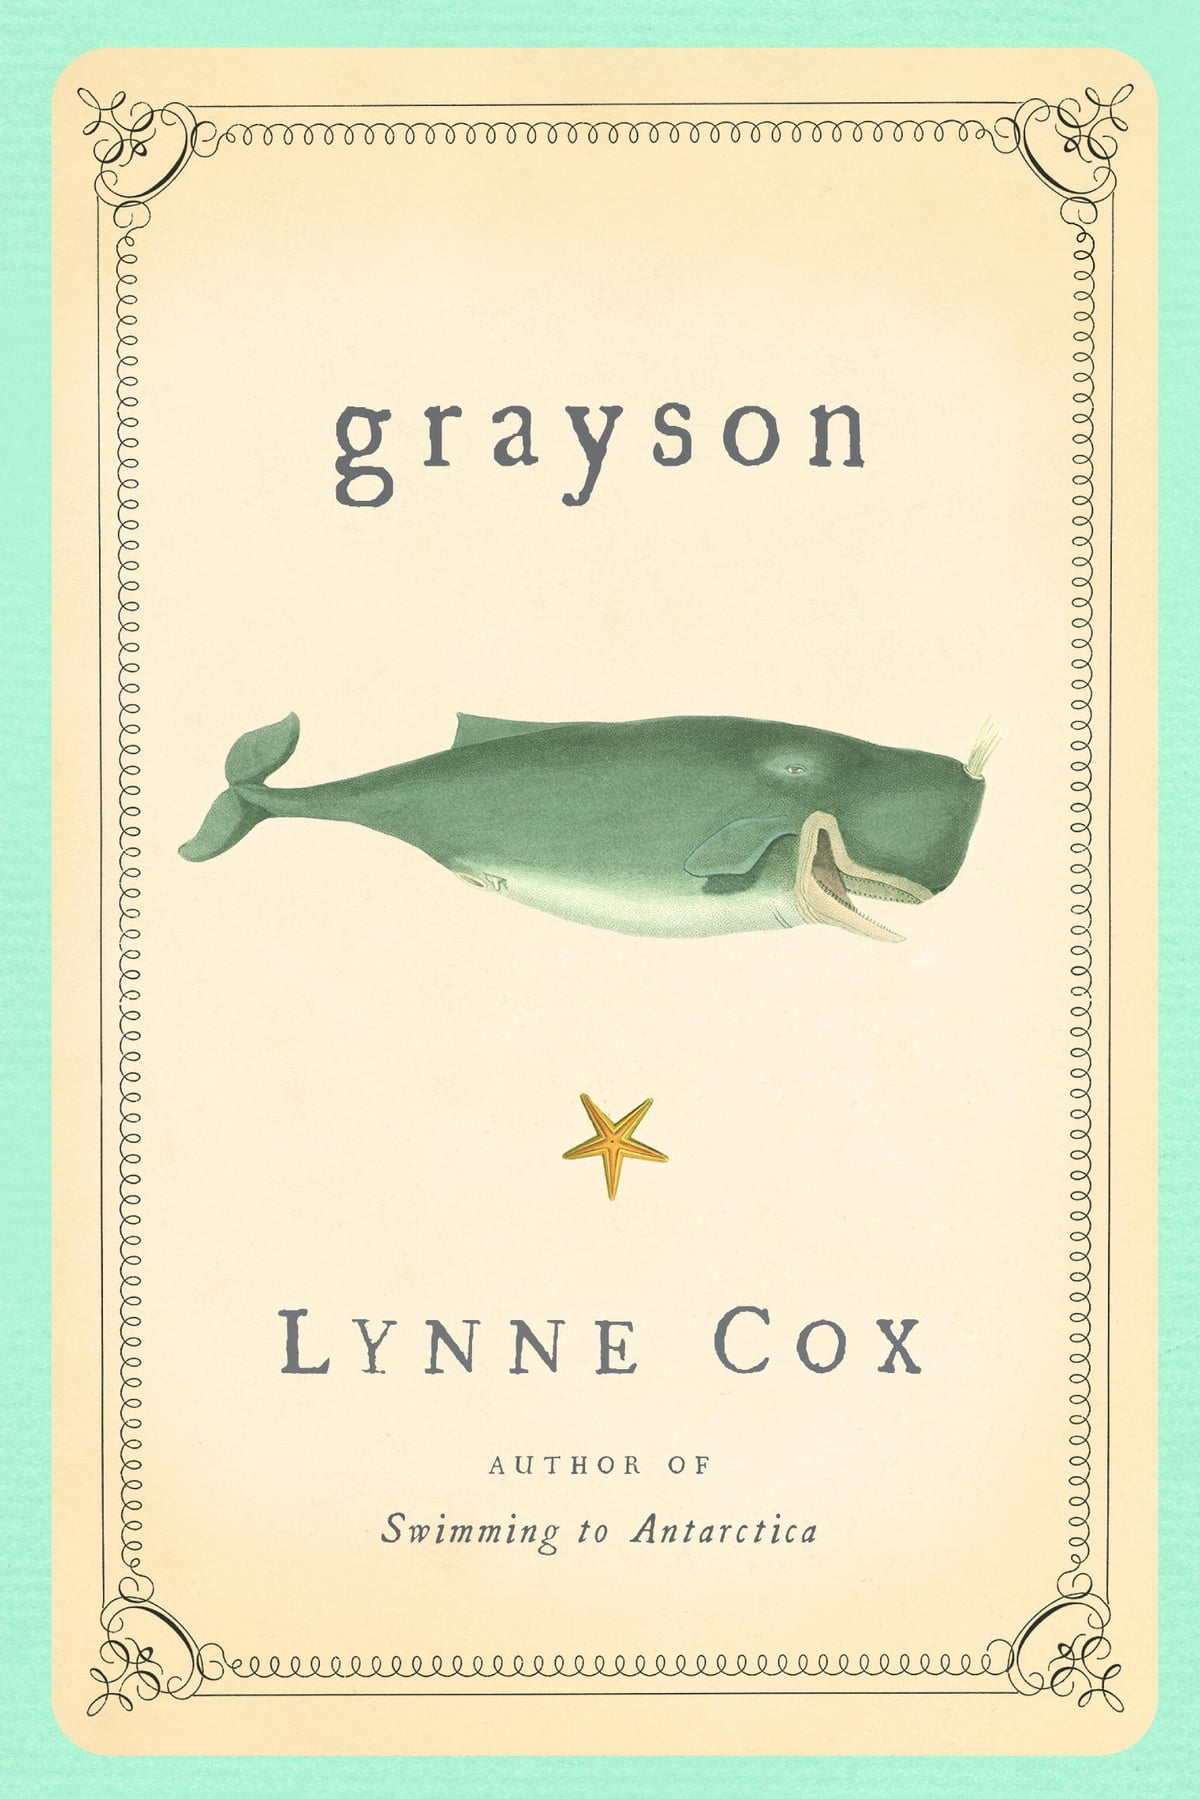 SwimTrek - lynne cox book